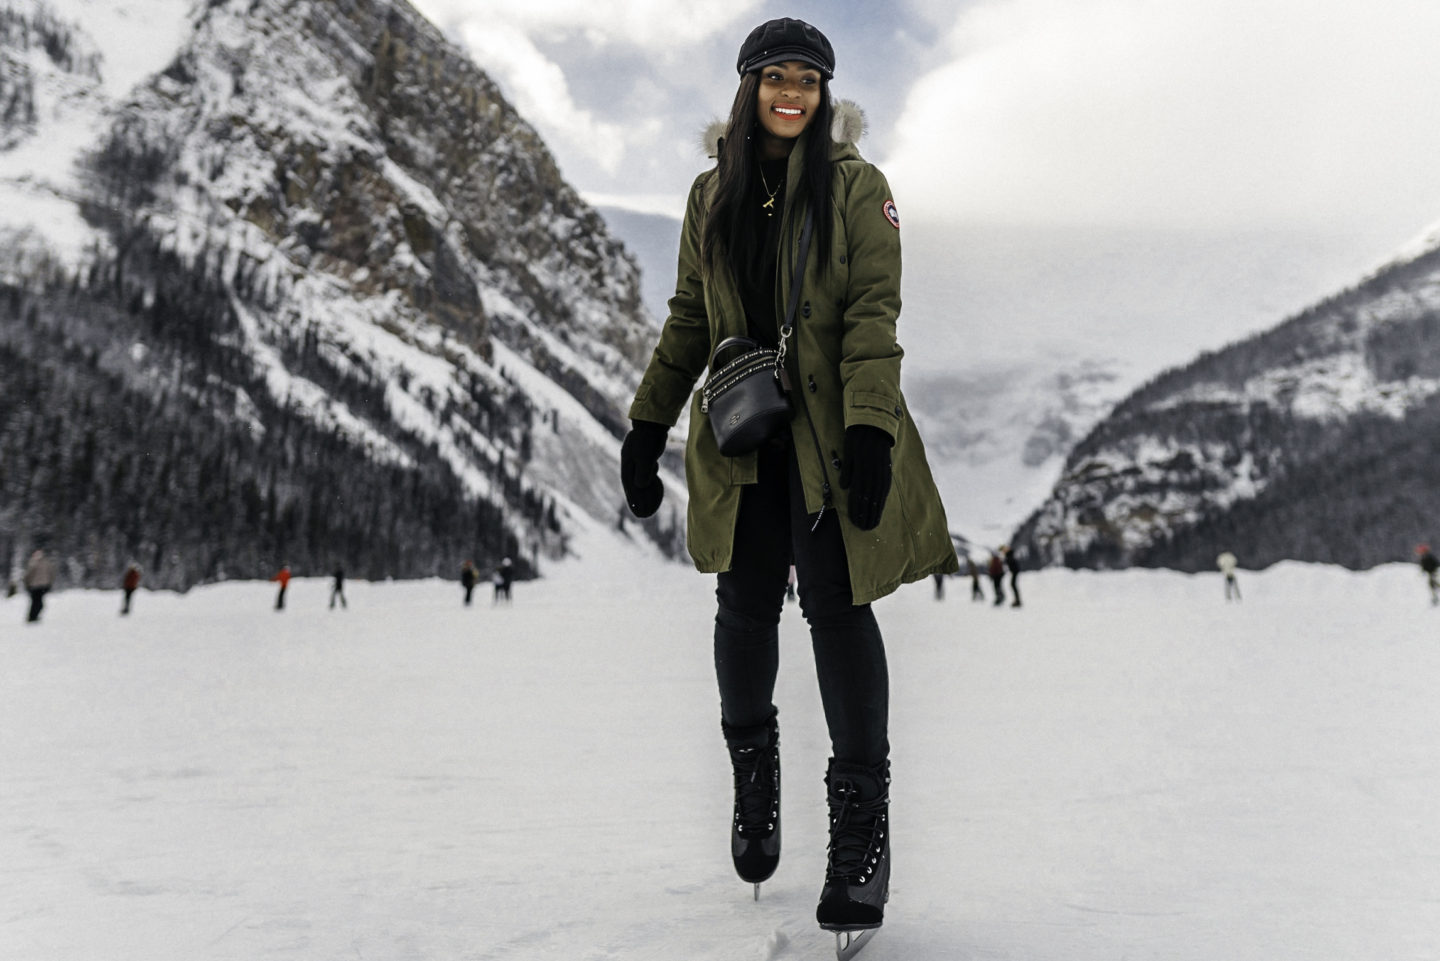 Skating On Lake Louise | Why You Should Make The Best of Winter | The Jeneralist